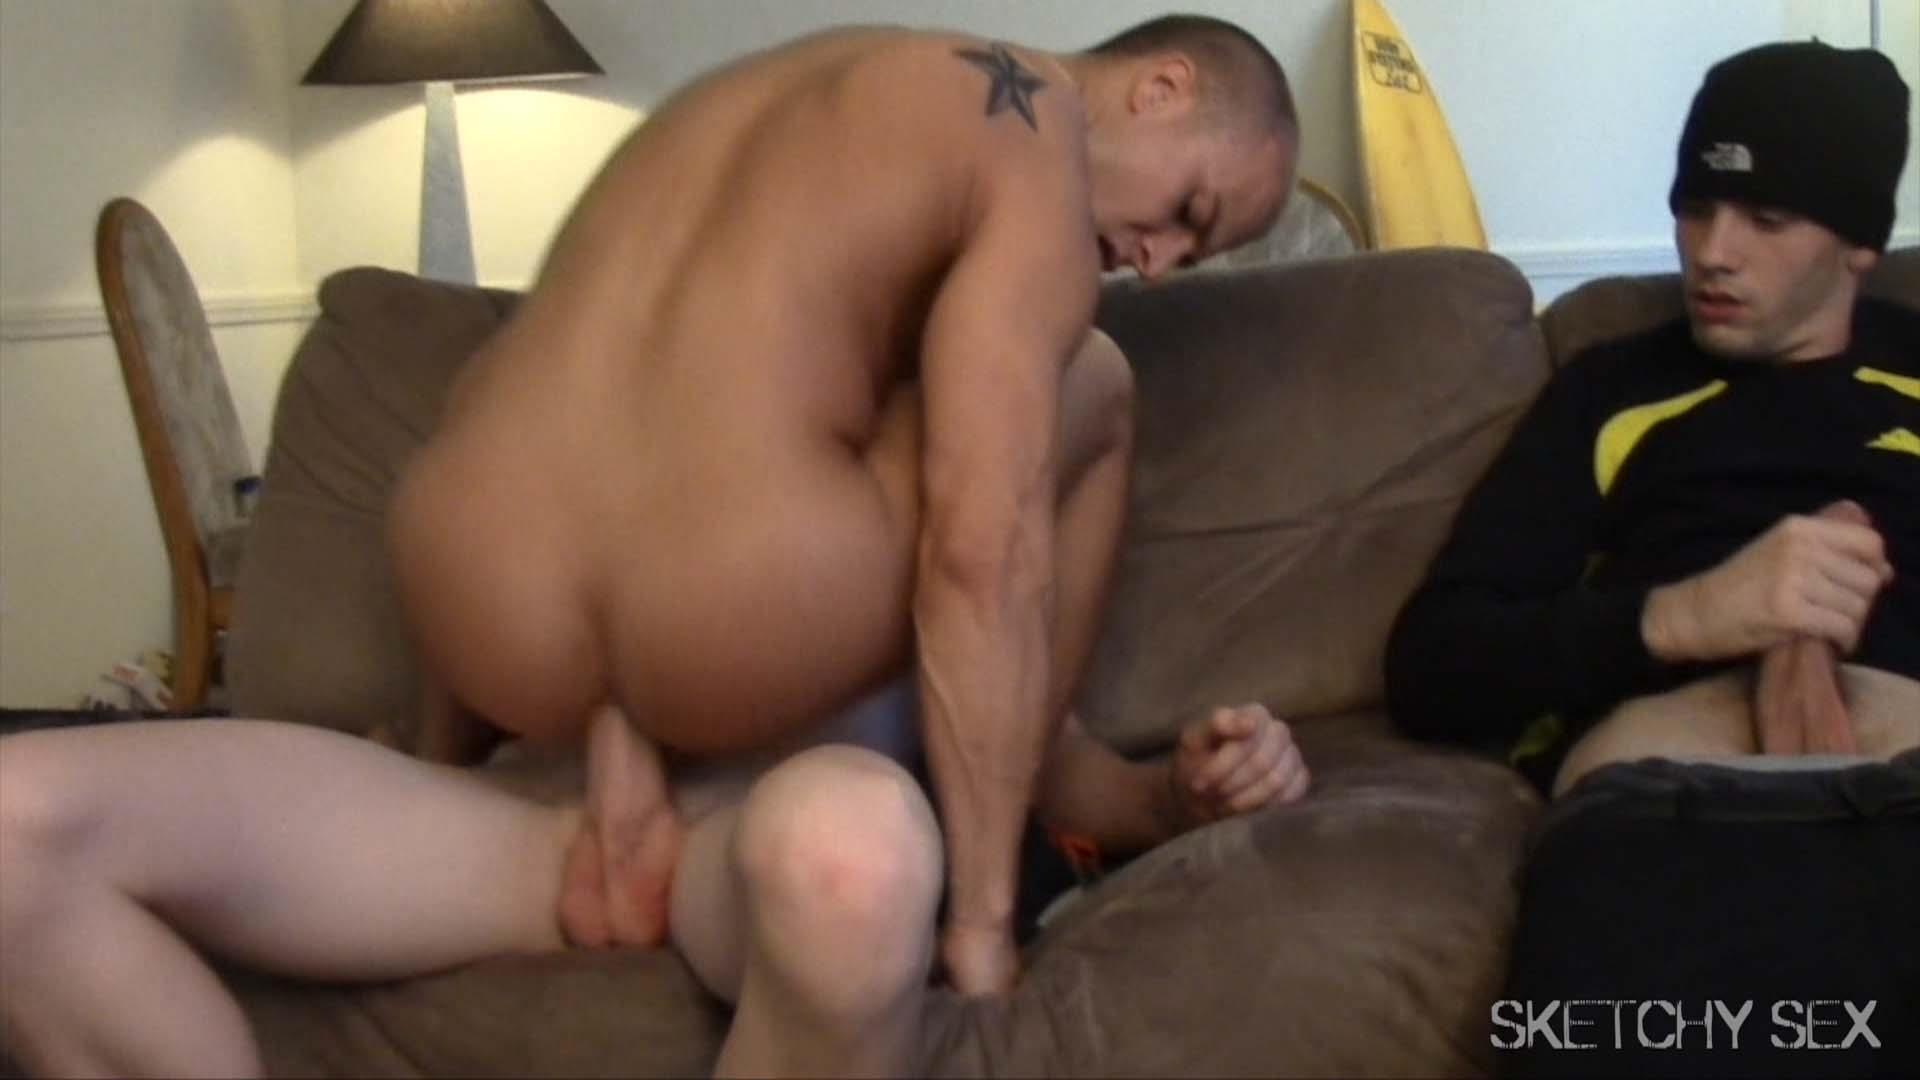 Free download watch gay sex porn 5